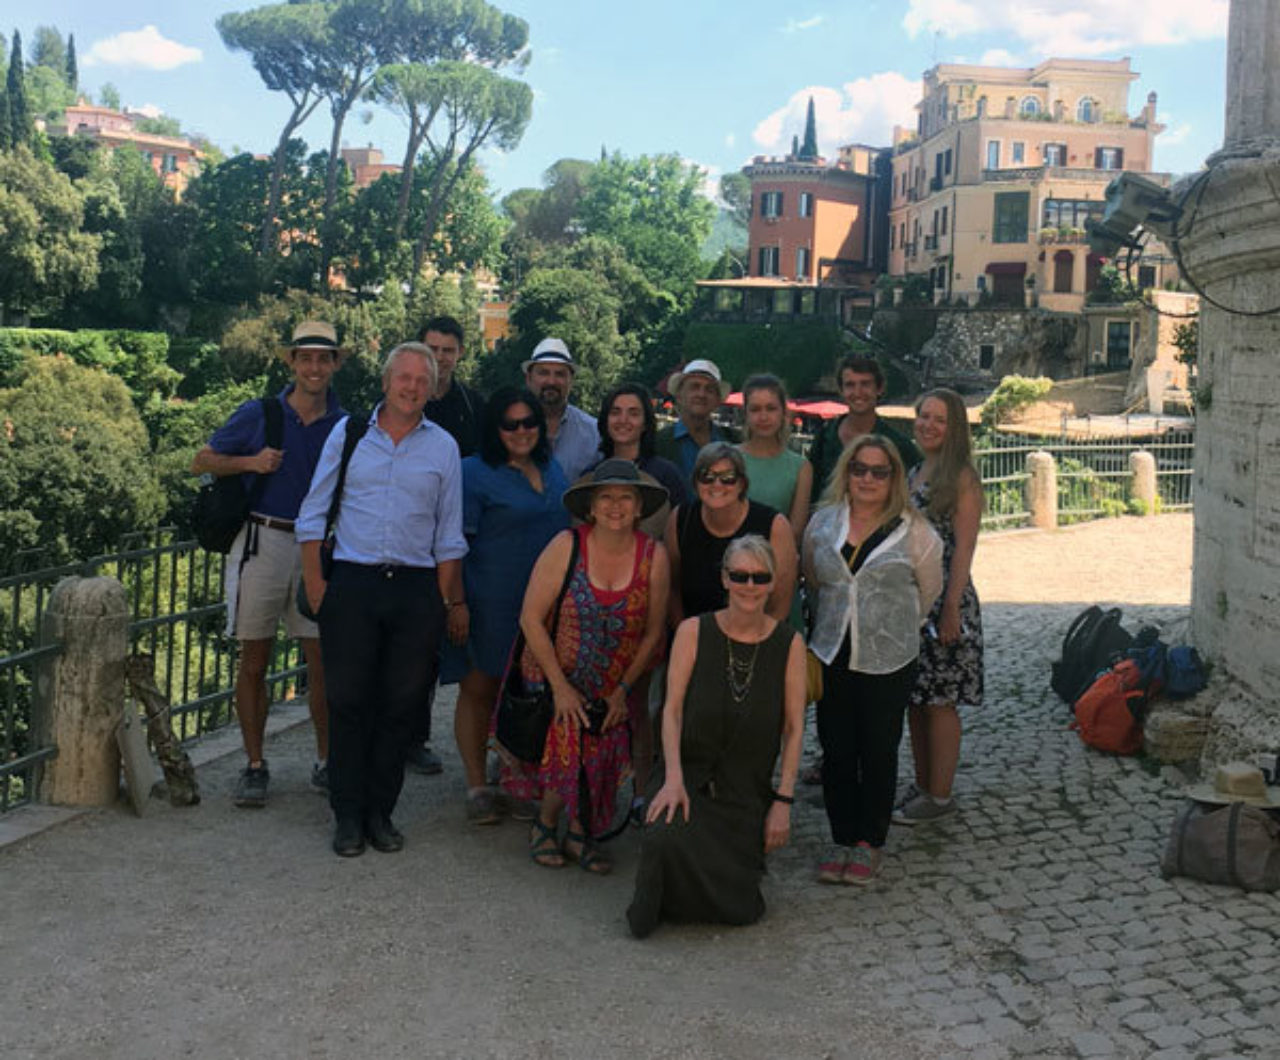 The tour group at Tivoli